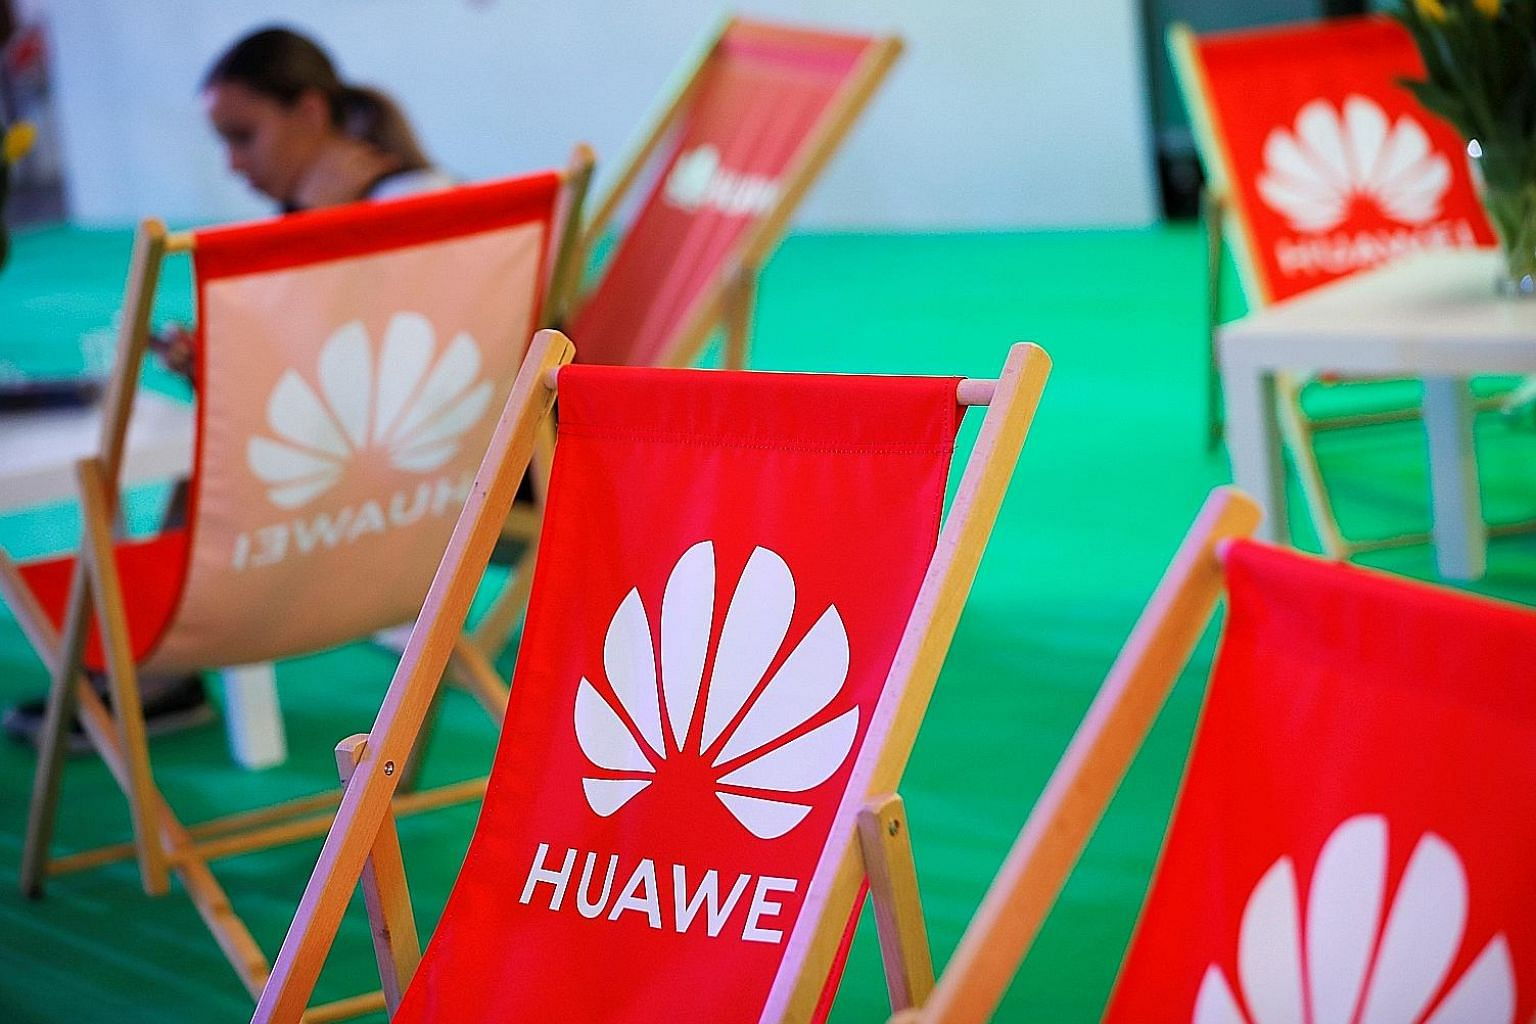 The European Union does have concerns about the security implications of companies like Huawei. But its approach involves regulating the way that technology is used, more than going after the companies that make it. In the long run, it says its more